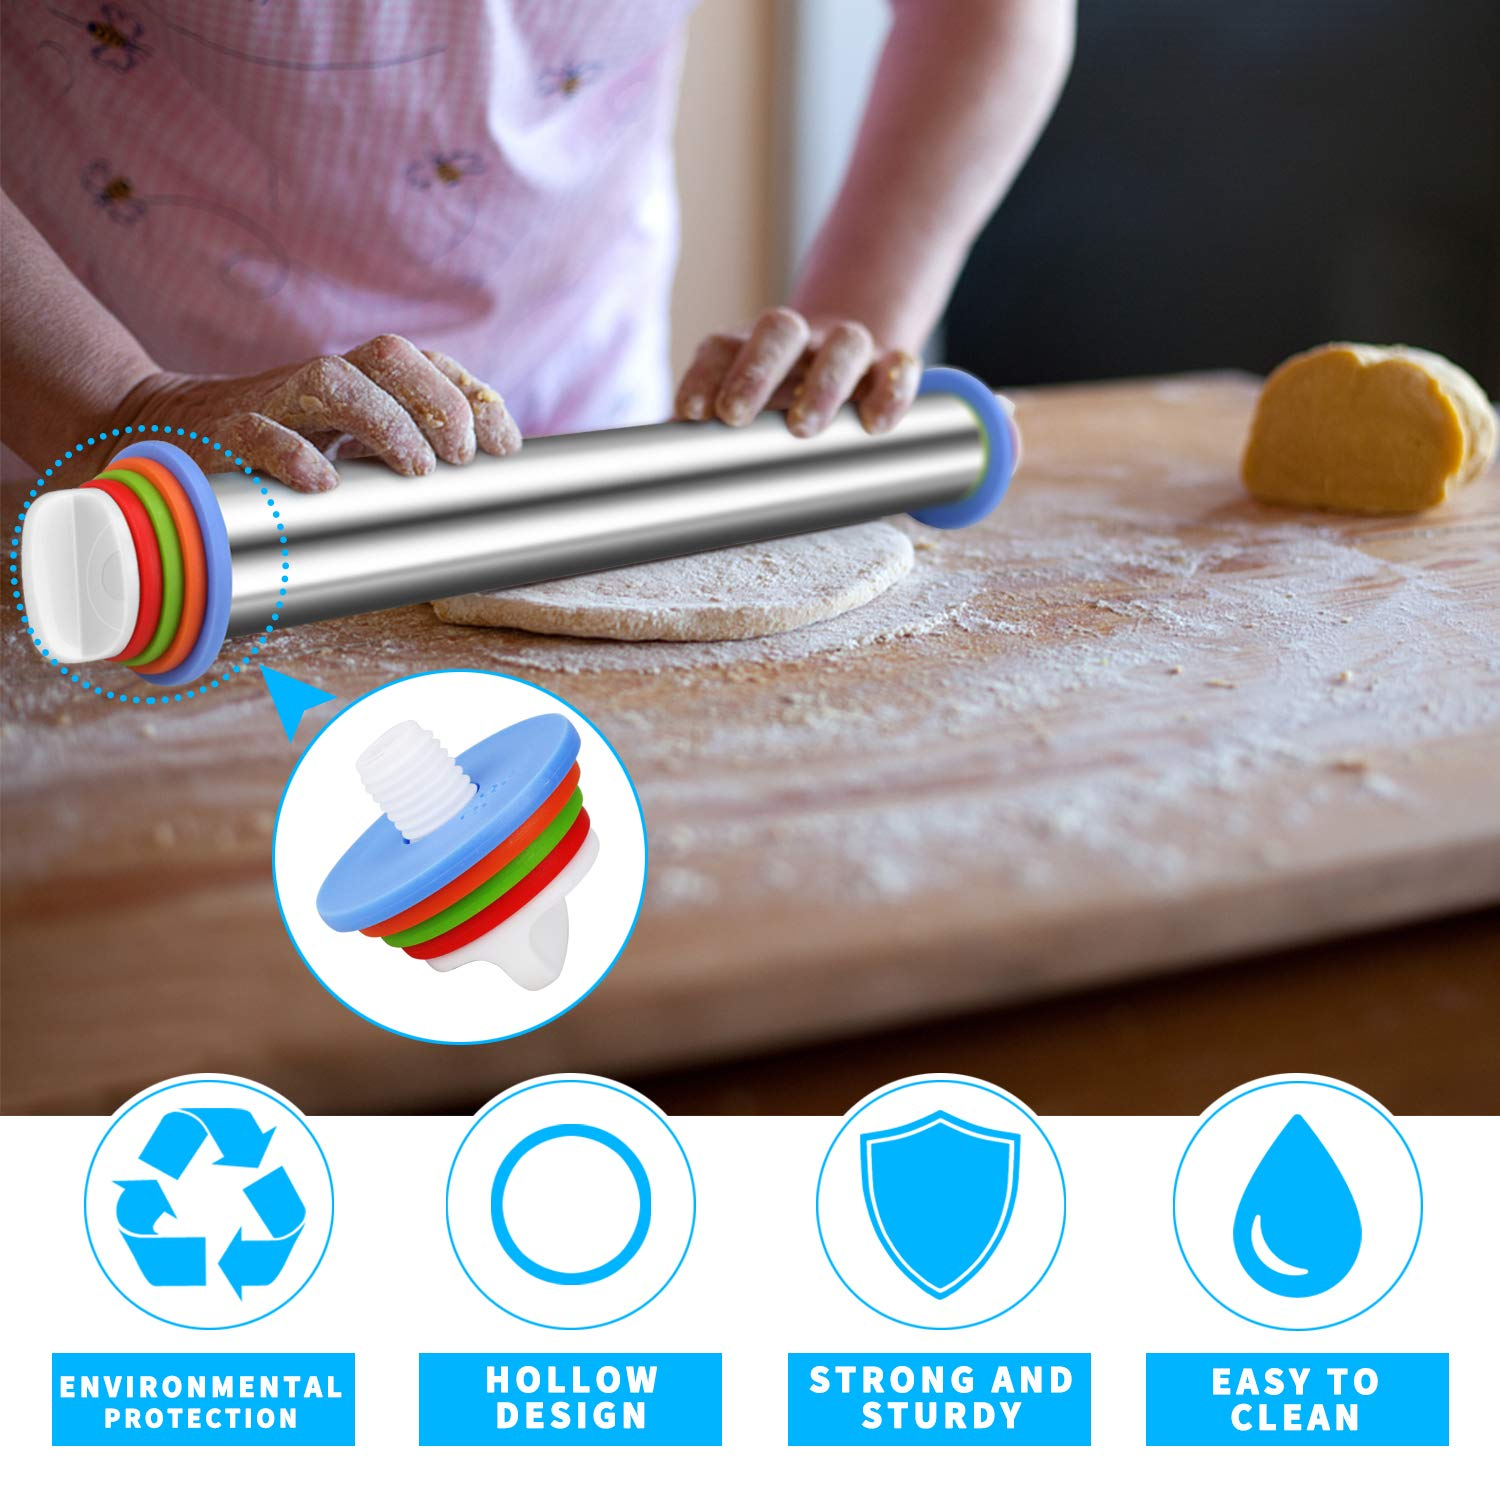 Winkeyes Stainless Steel Rolling Pins, with 4 Adjustable Discs Ring, Non-Stick Rolling Pin for Fondant, Baking Dough Pizza Pie Cookies and Pastry Cookies by Winkeyes (Image #7)